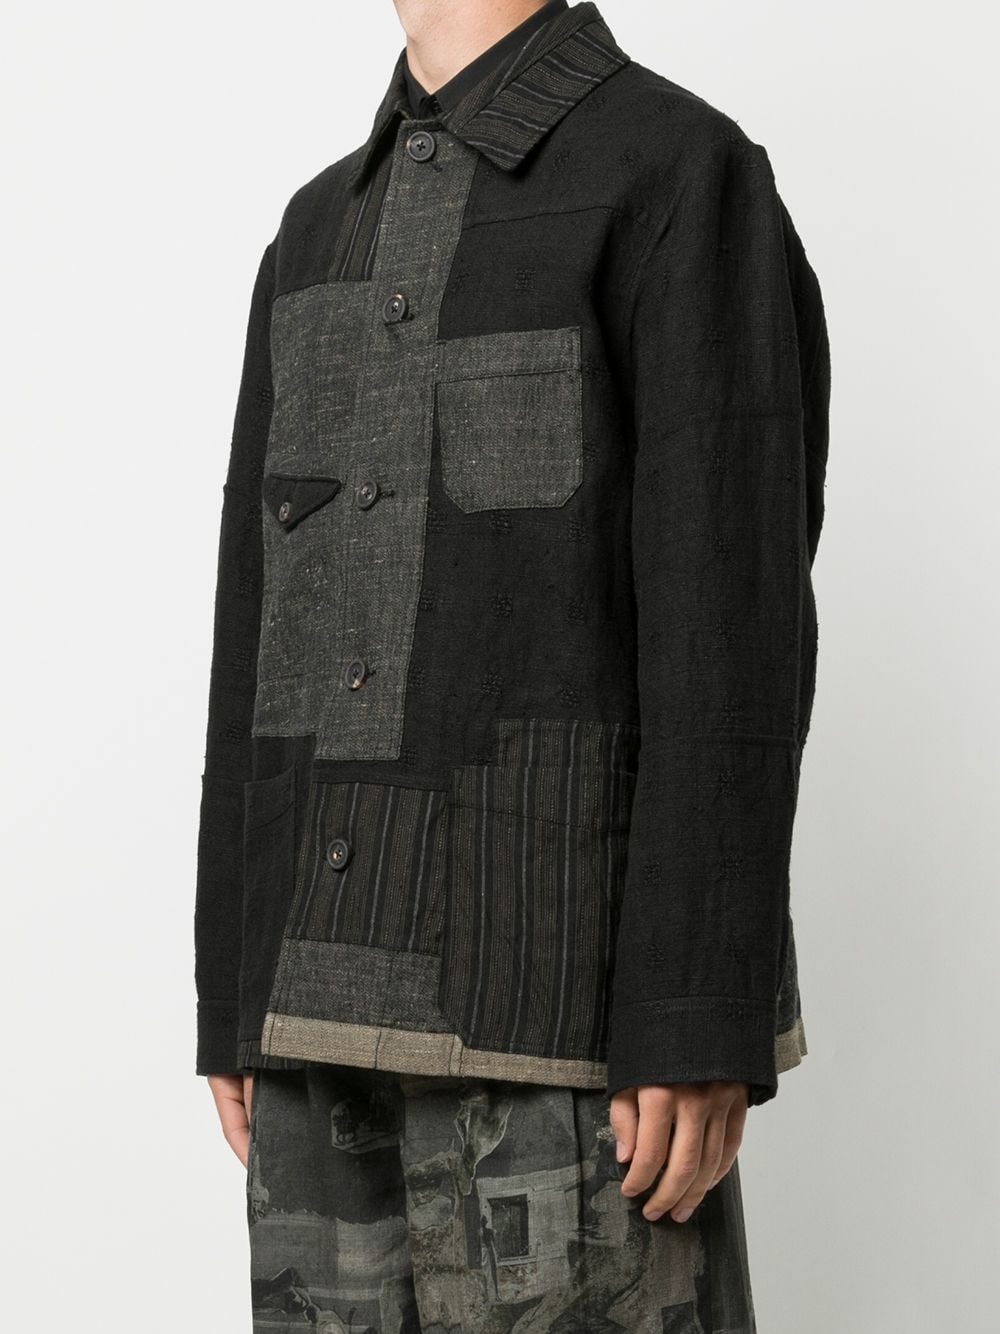 ZIGGY CHEN MEN COLLAGE COVERALL JACKET